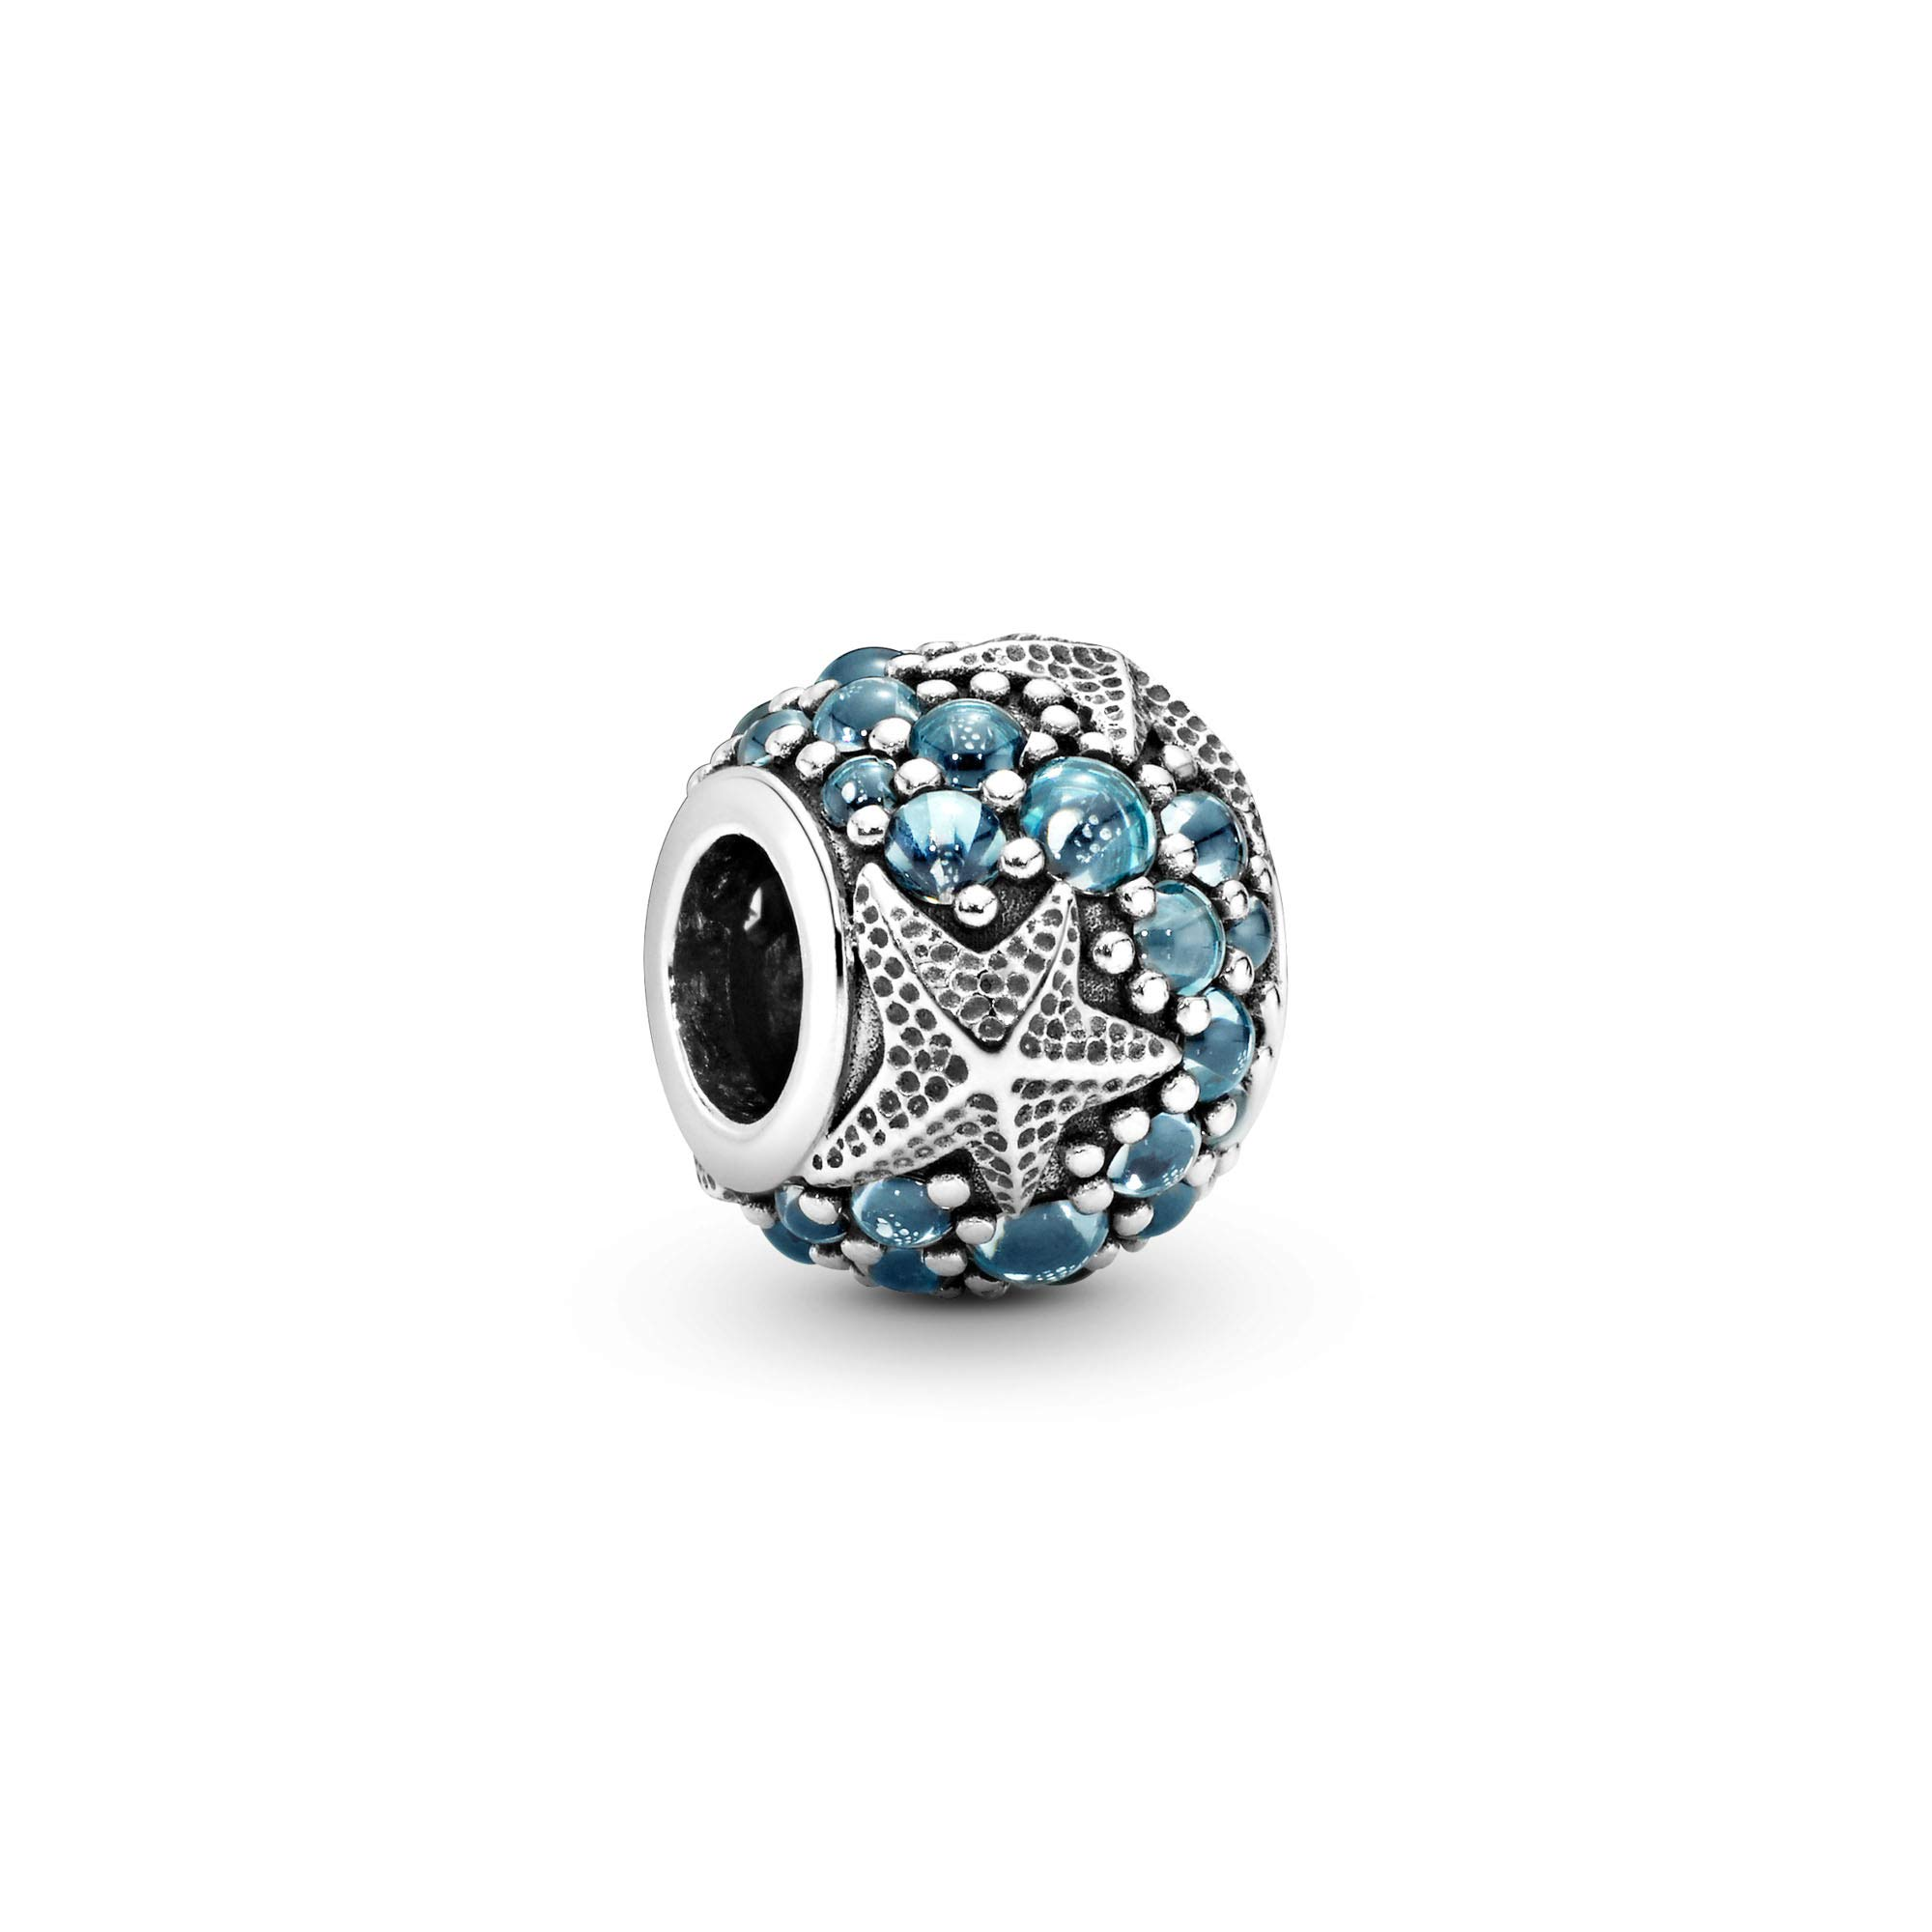 Jewelry Pave Ocean and Starfish Cubic Zirconia Charm in Sterling Silver